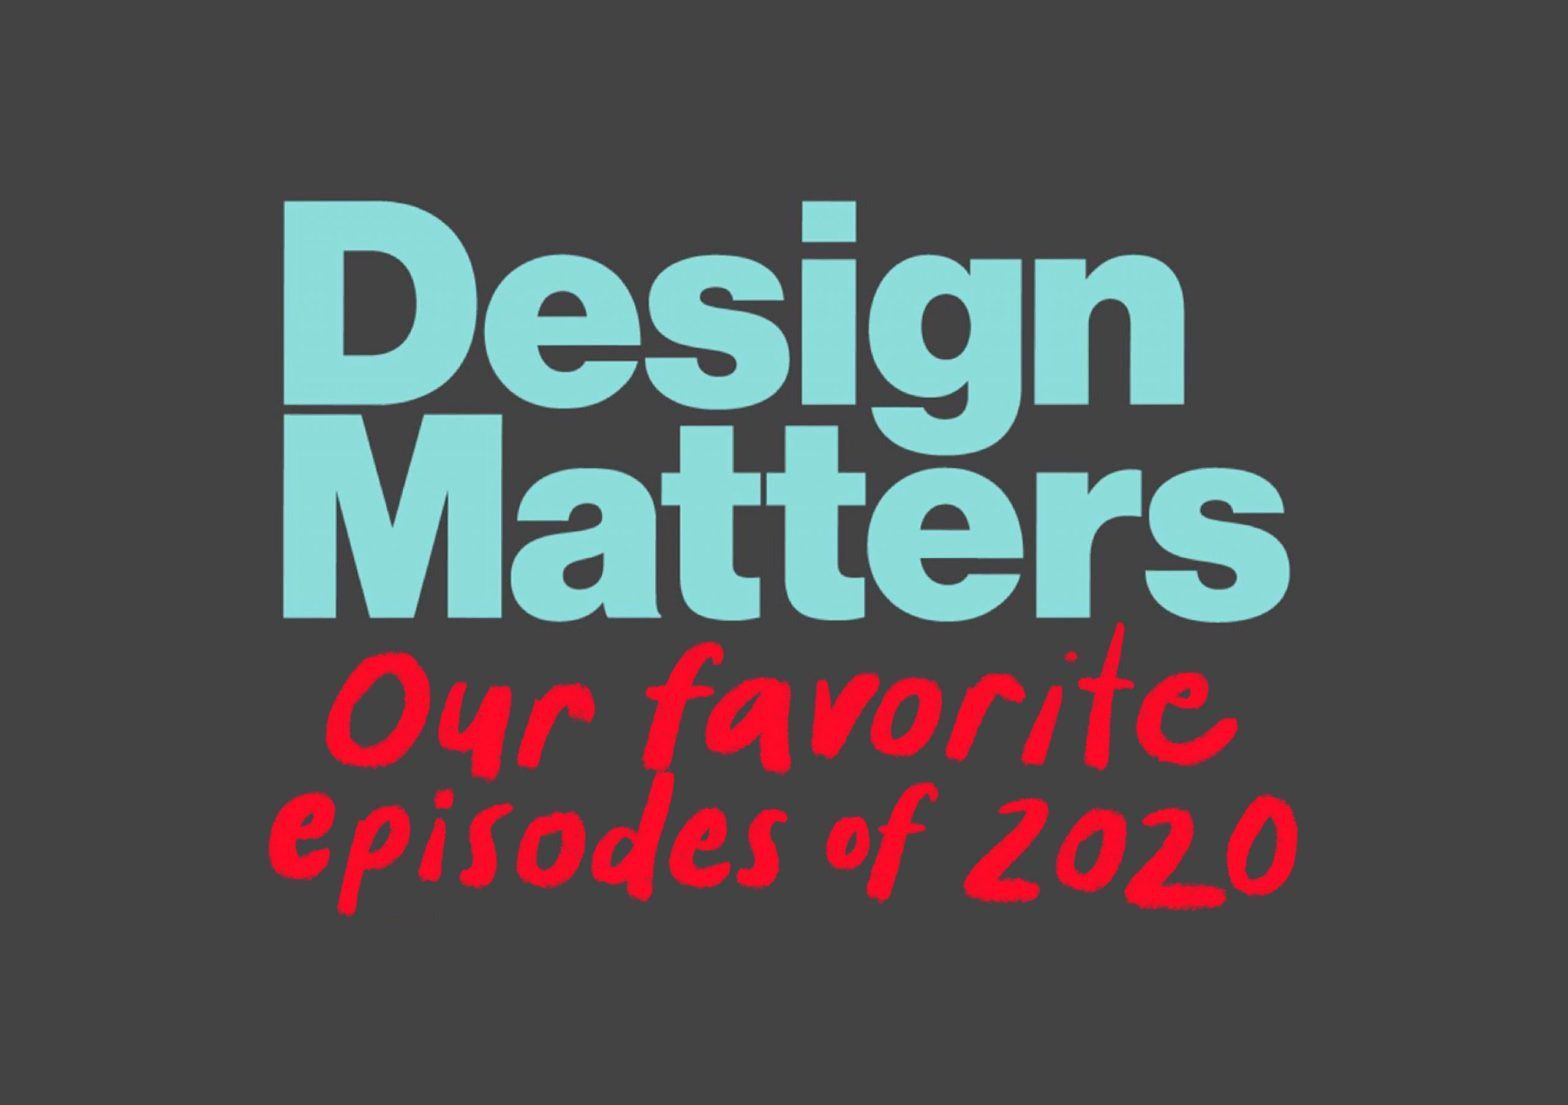 Thumbnail for 10 of Our Favorite Design Matters Episodes of 2020